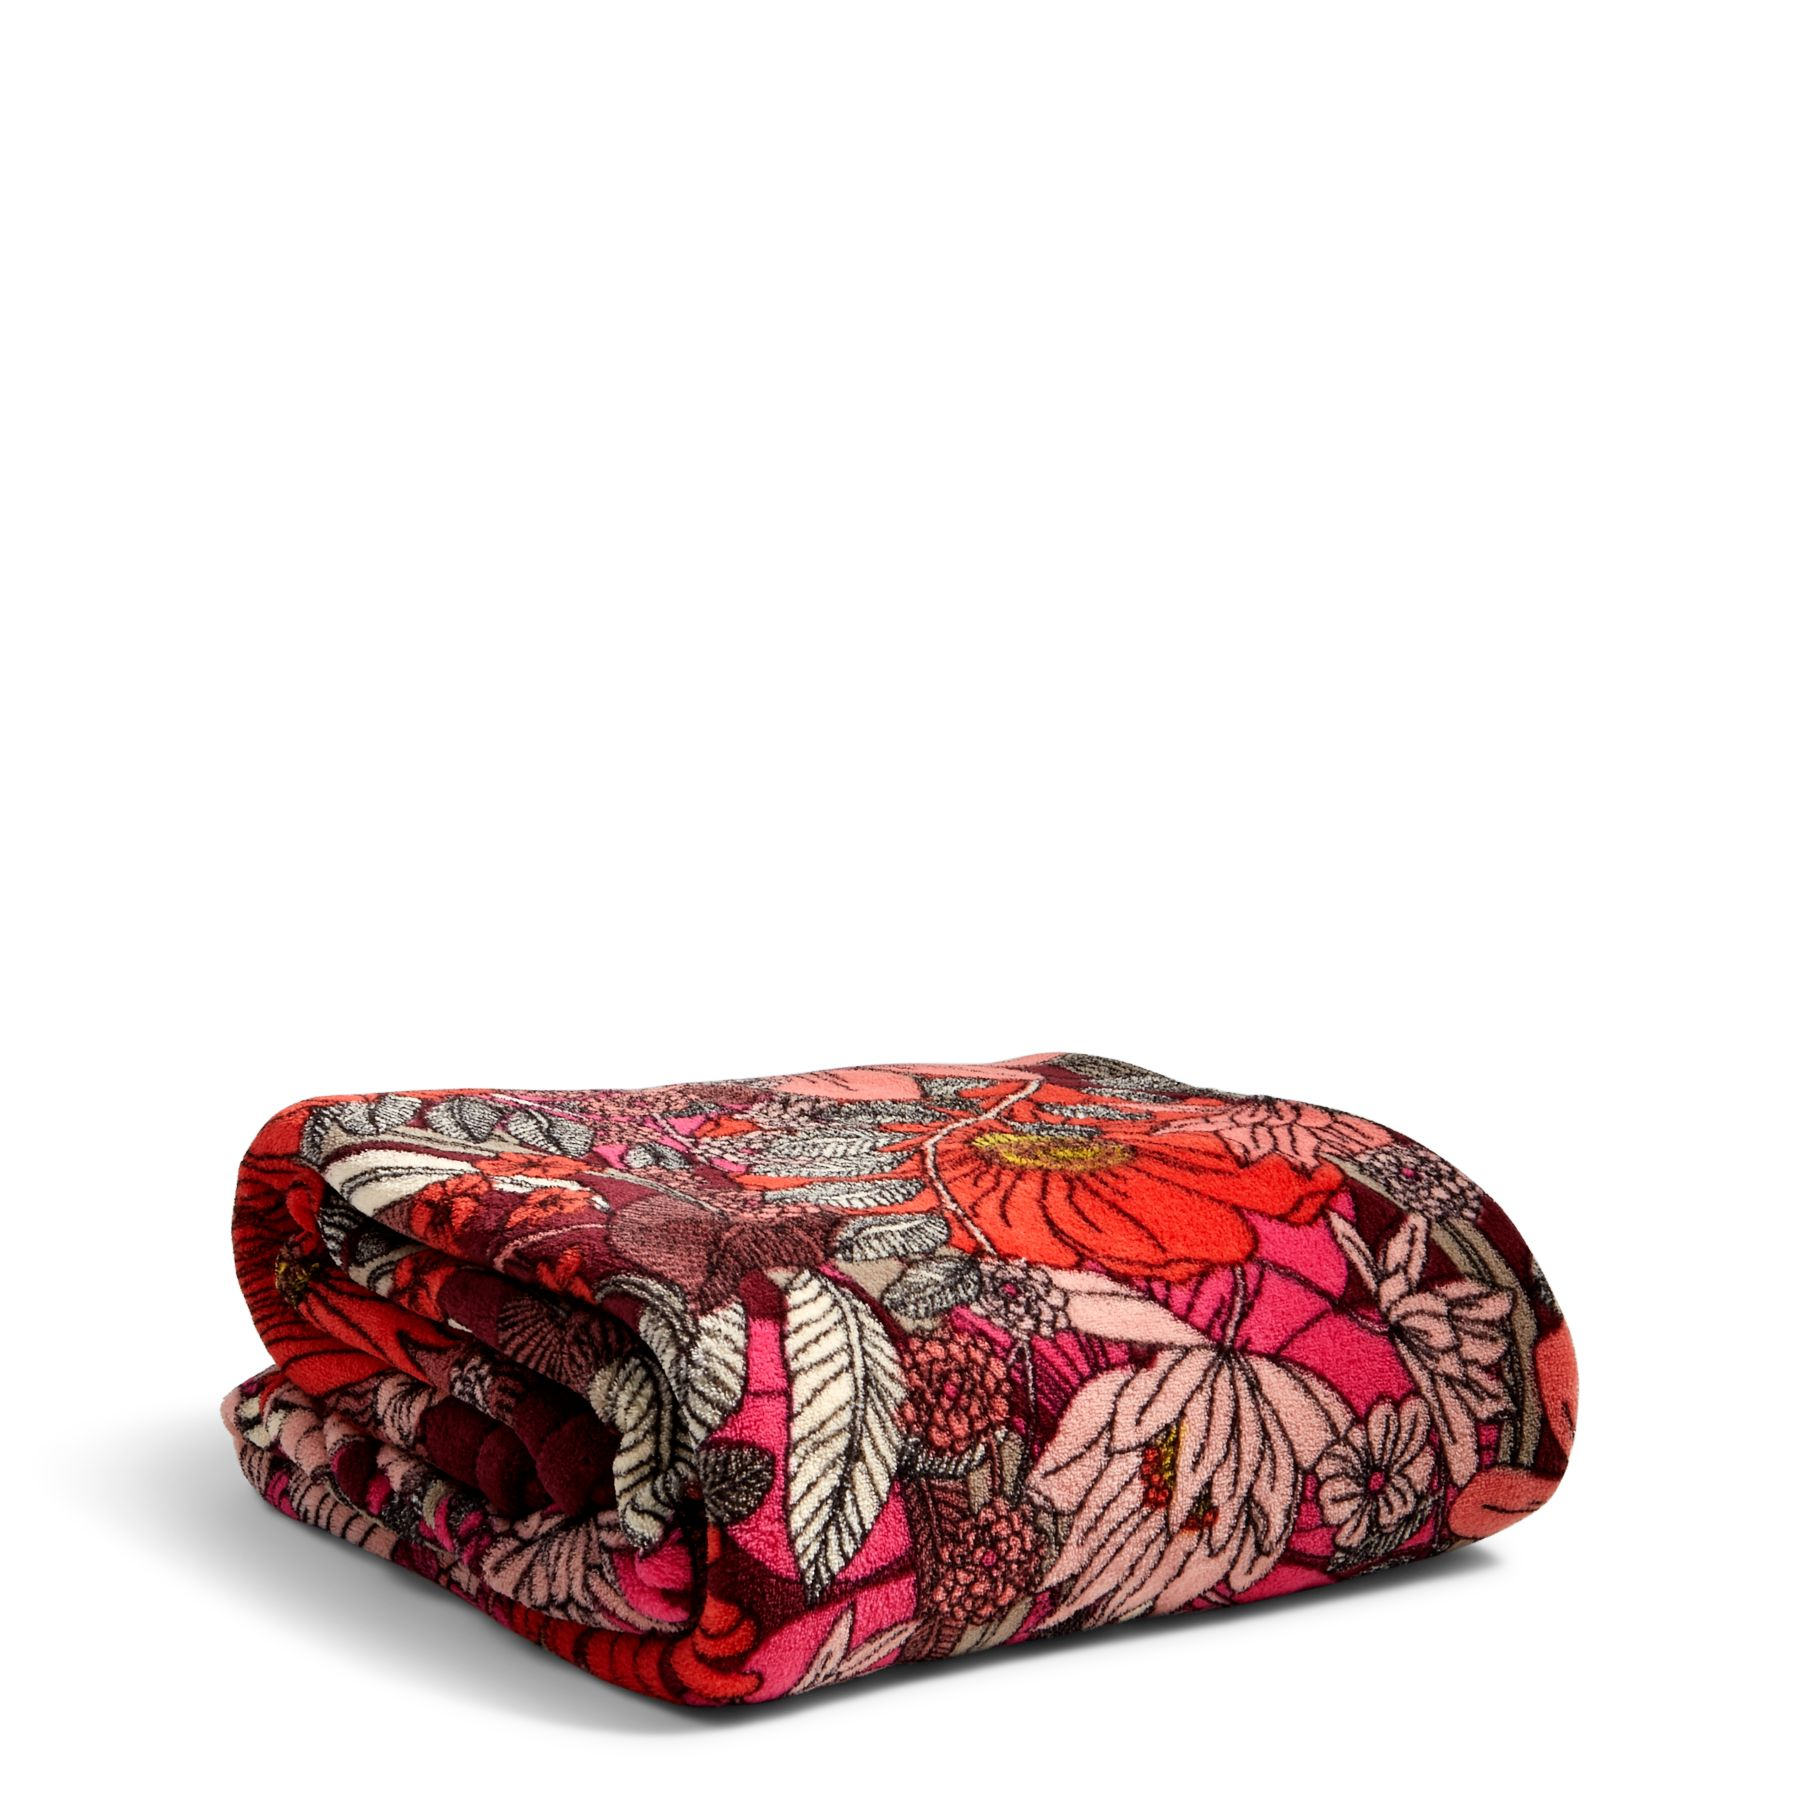 Bohemian Blooms Throw Blanket by Vera Bradley